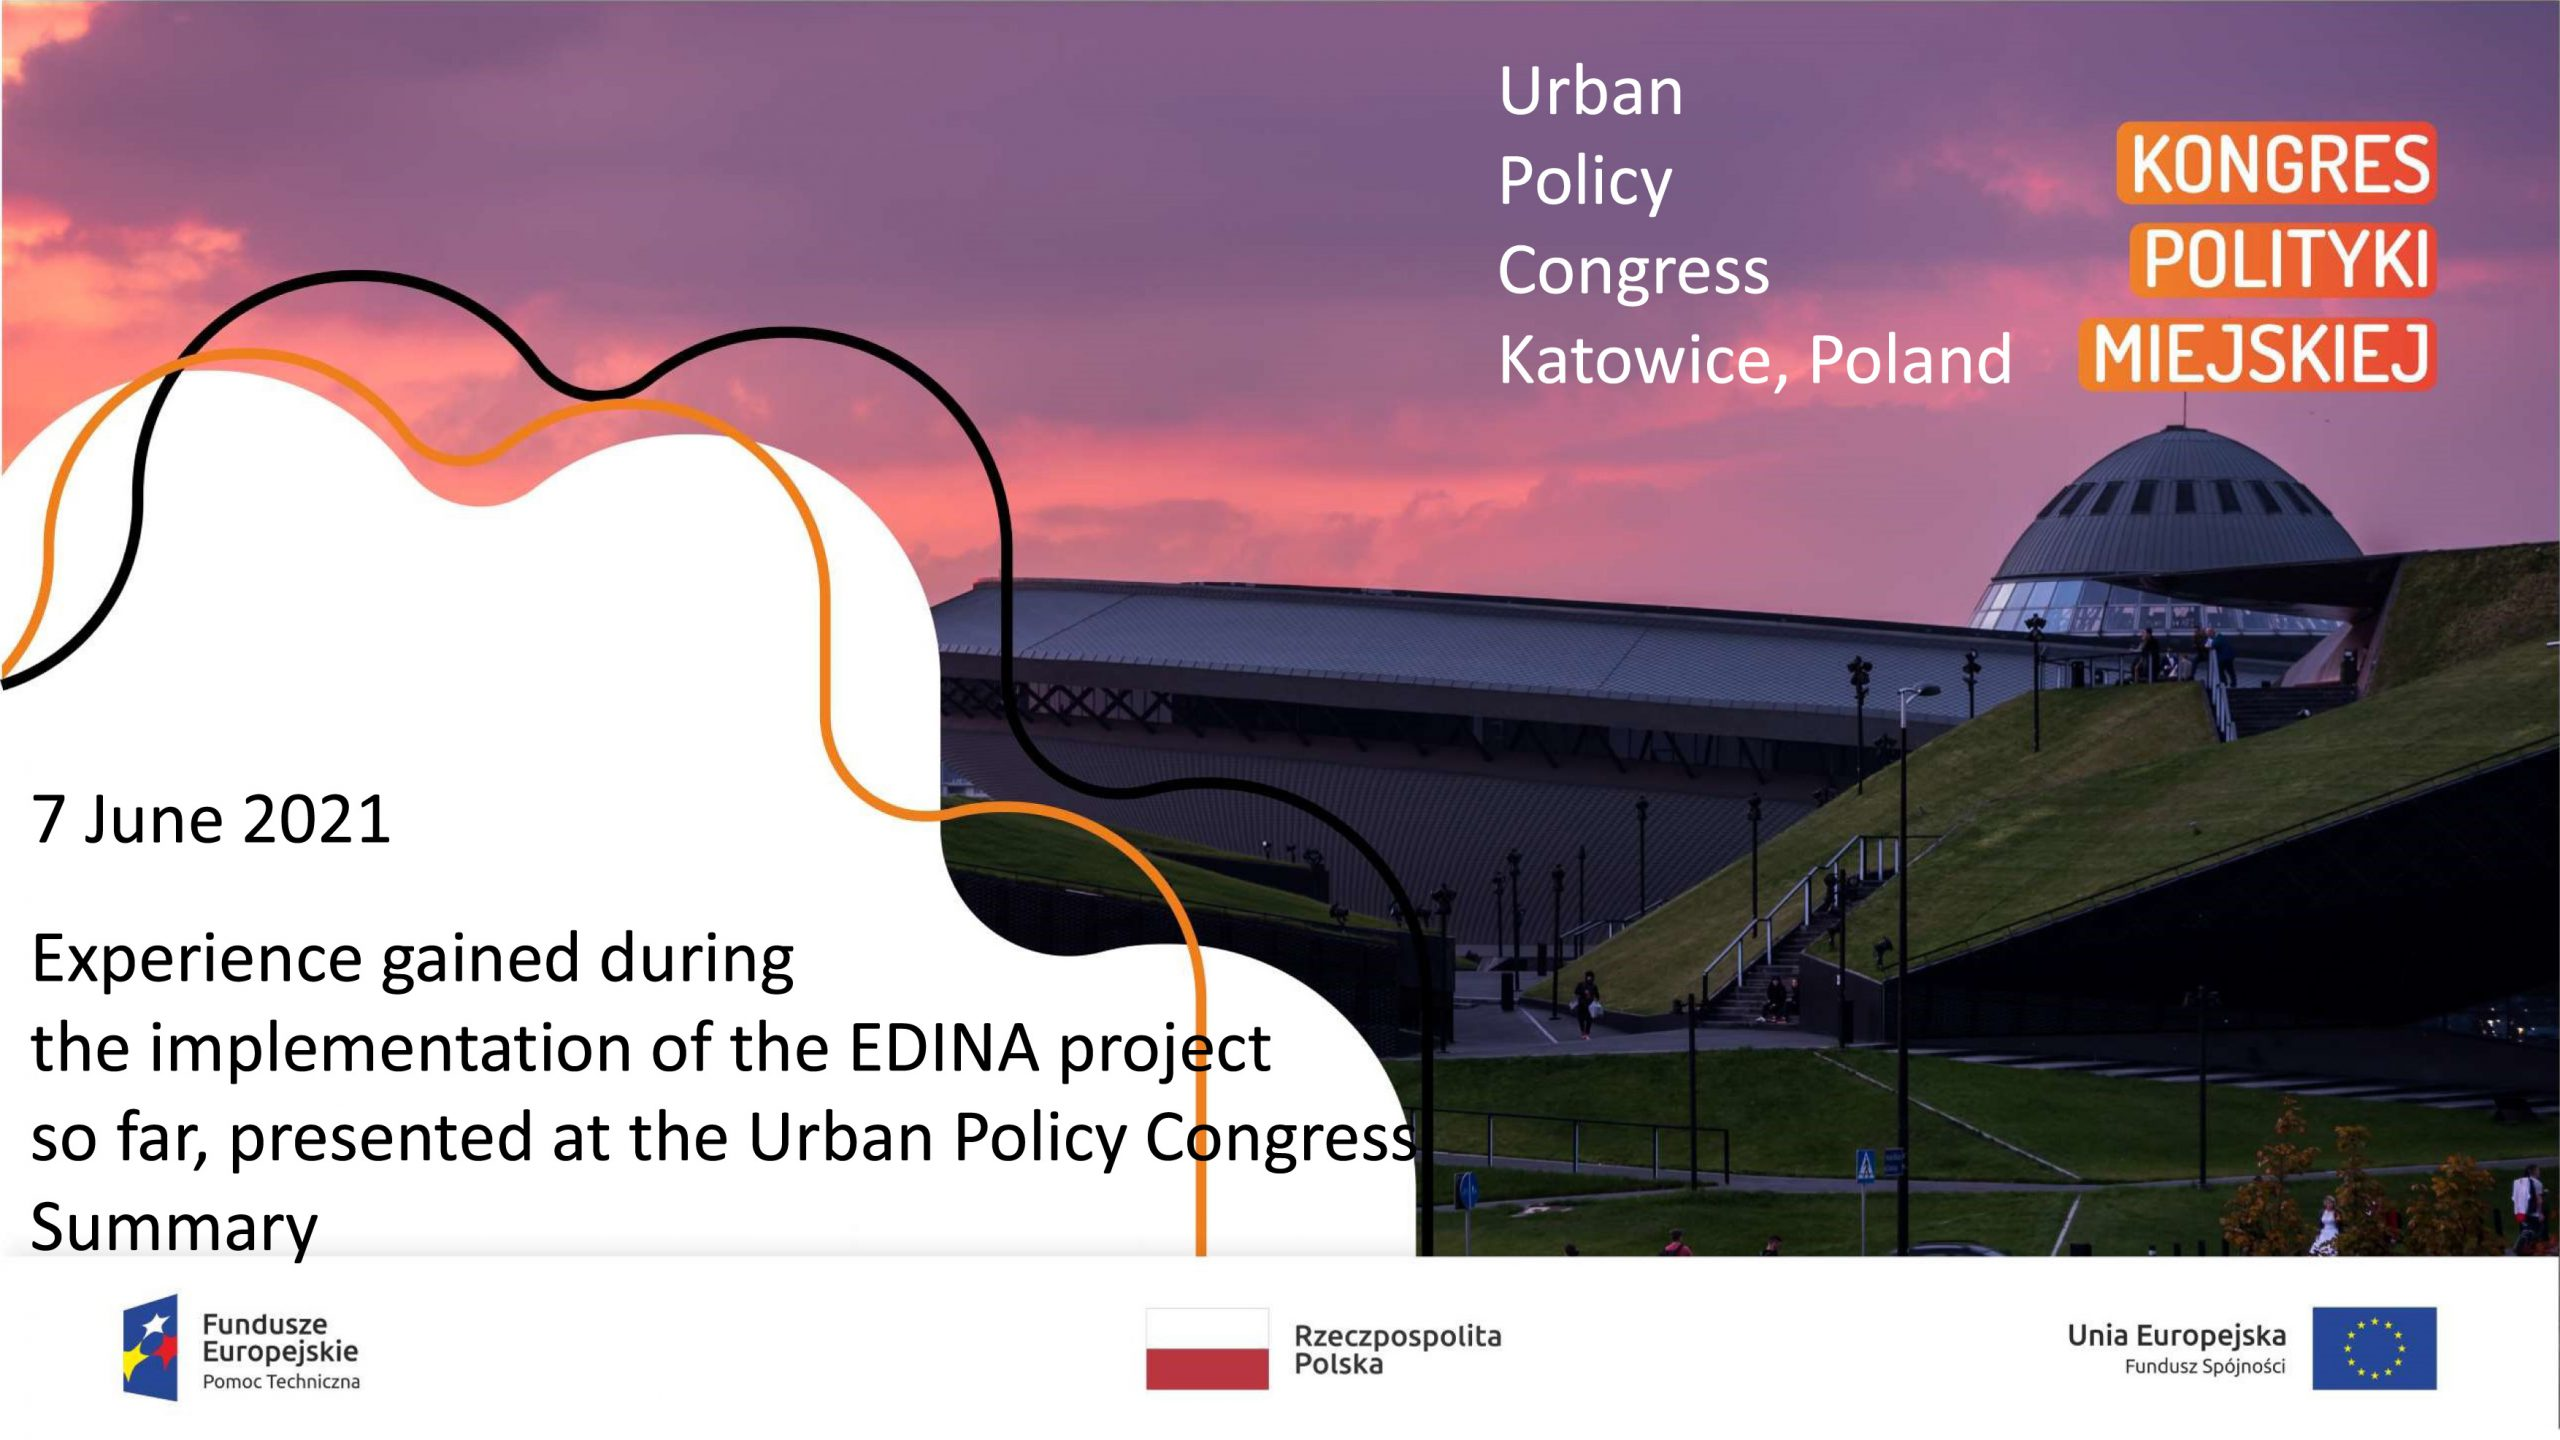 EDINA project experience during the Urban Policy Congress in Katowice (Poland).